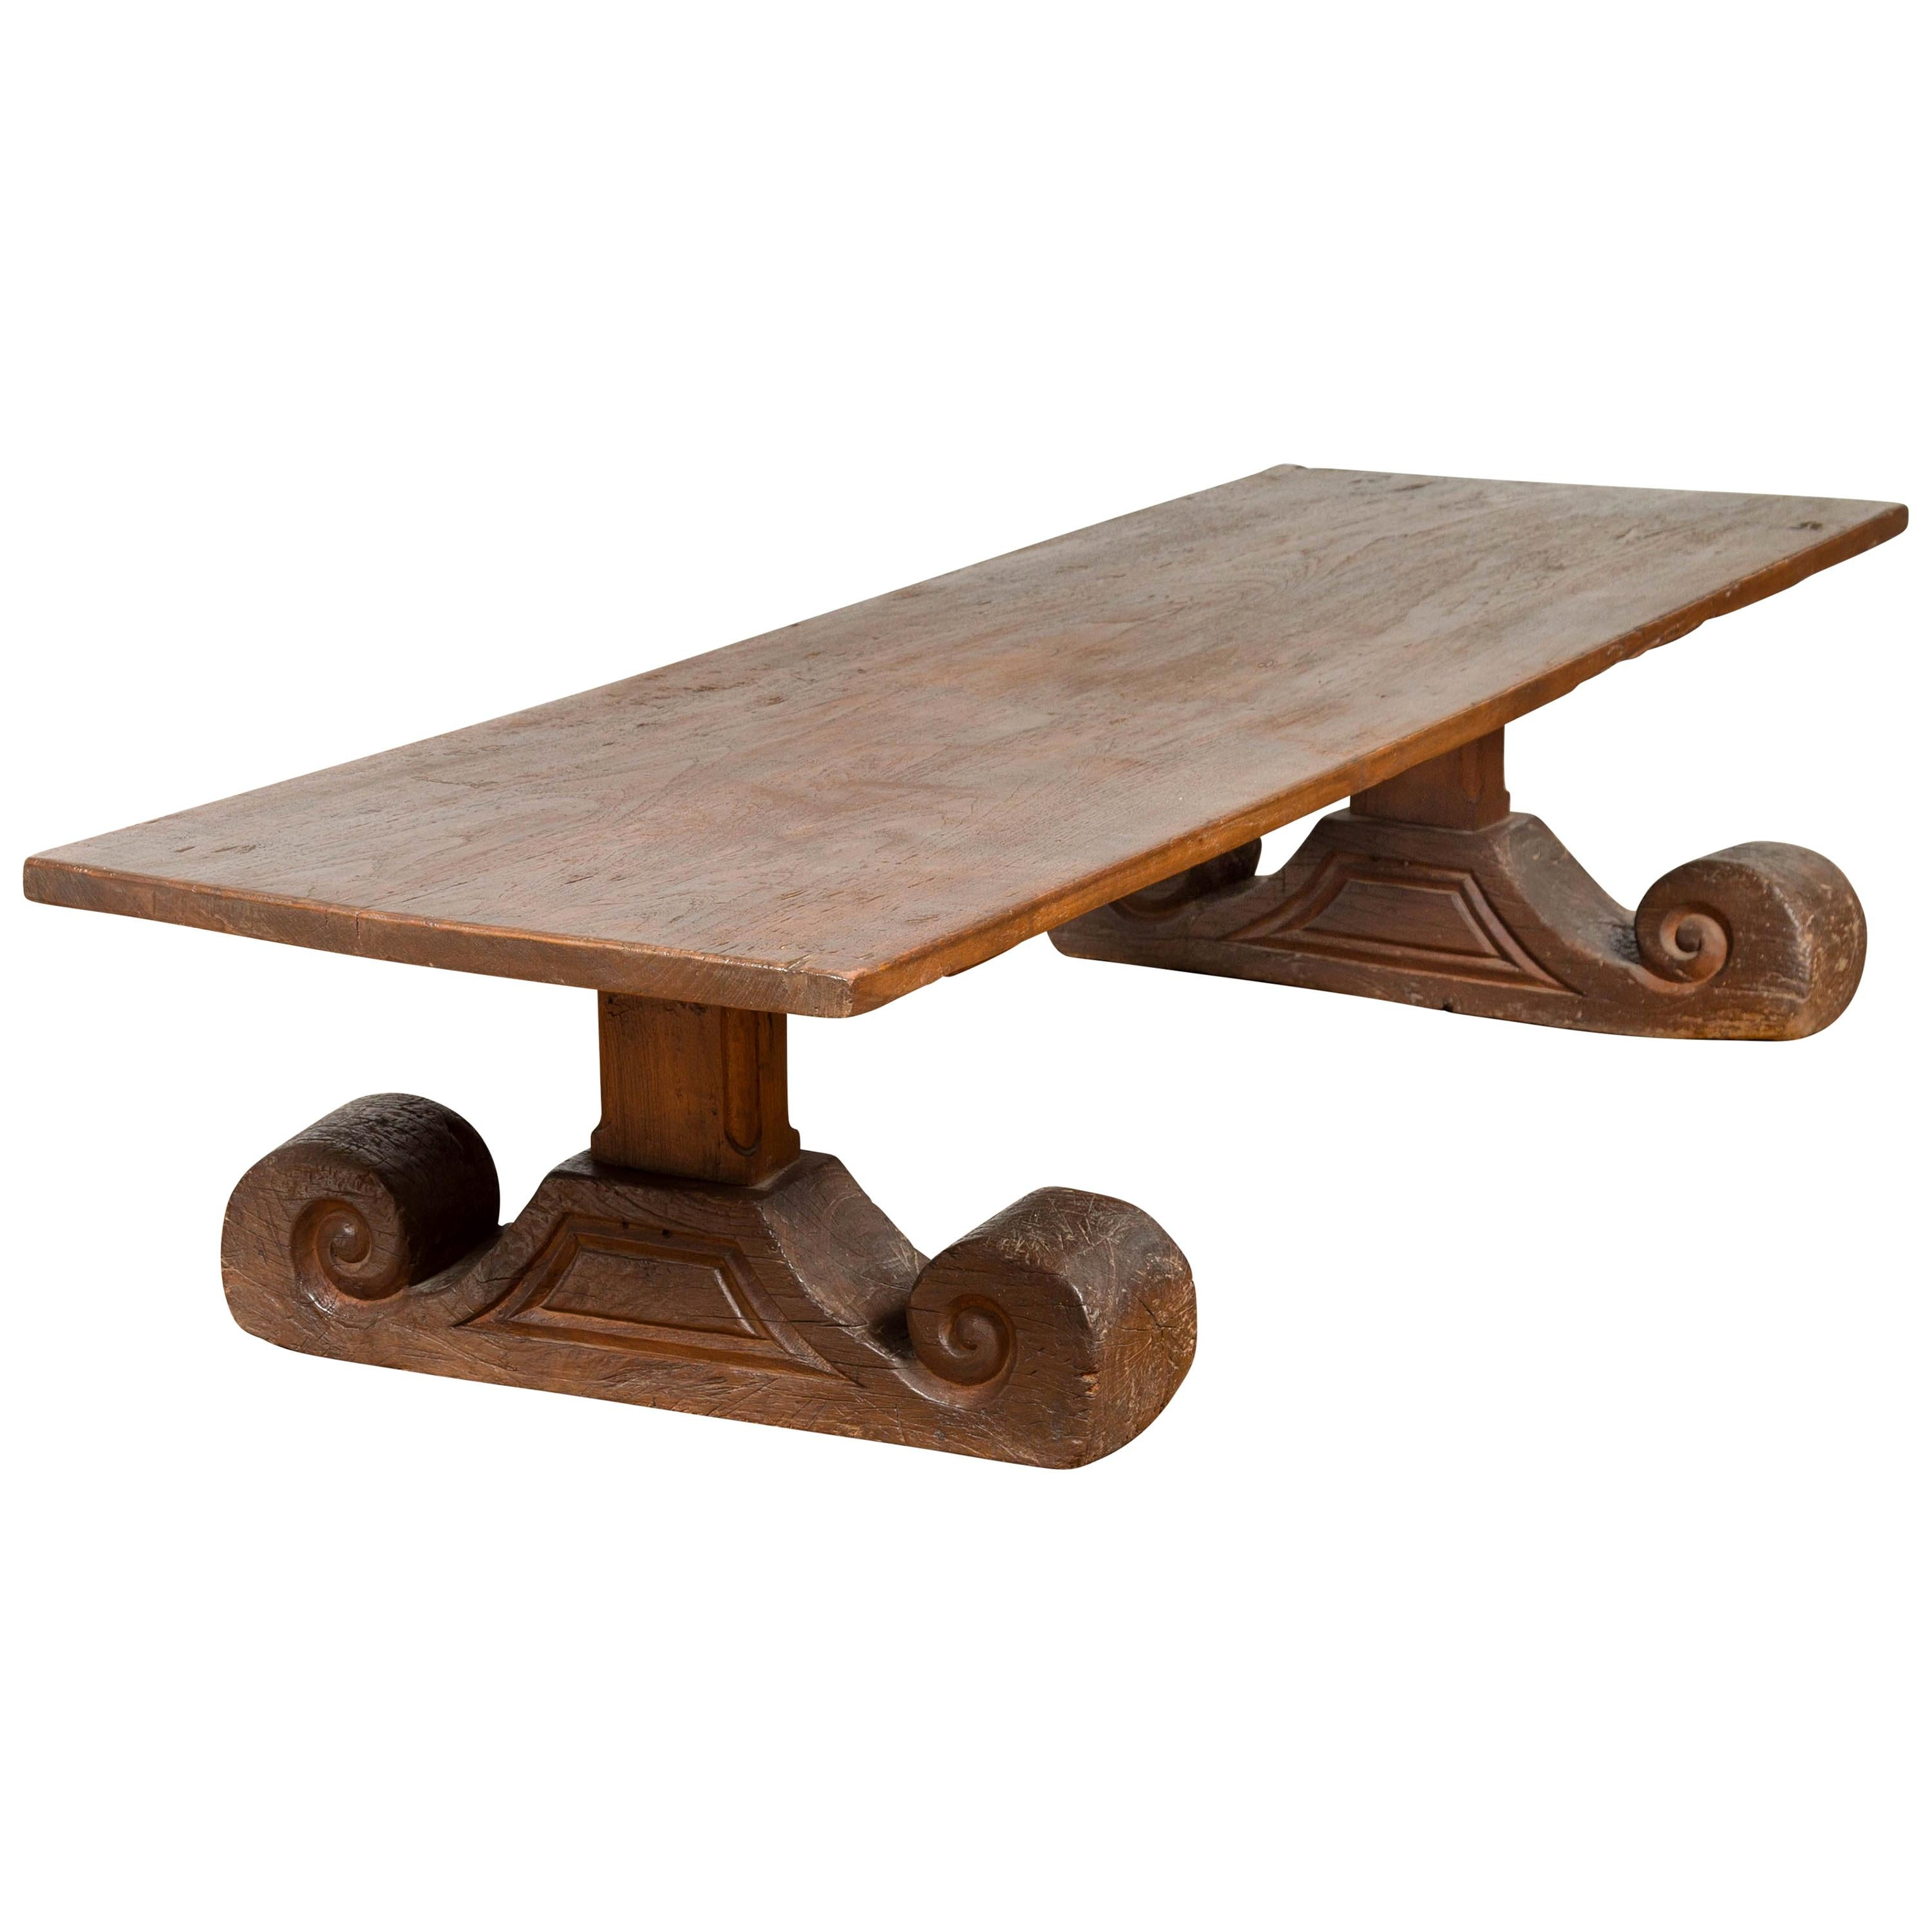 Rustic Chinese 19th Century Elm Coffee Table with Large Scrolling Feet